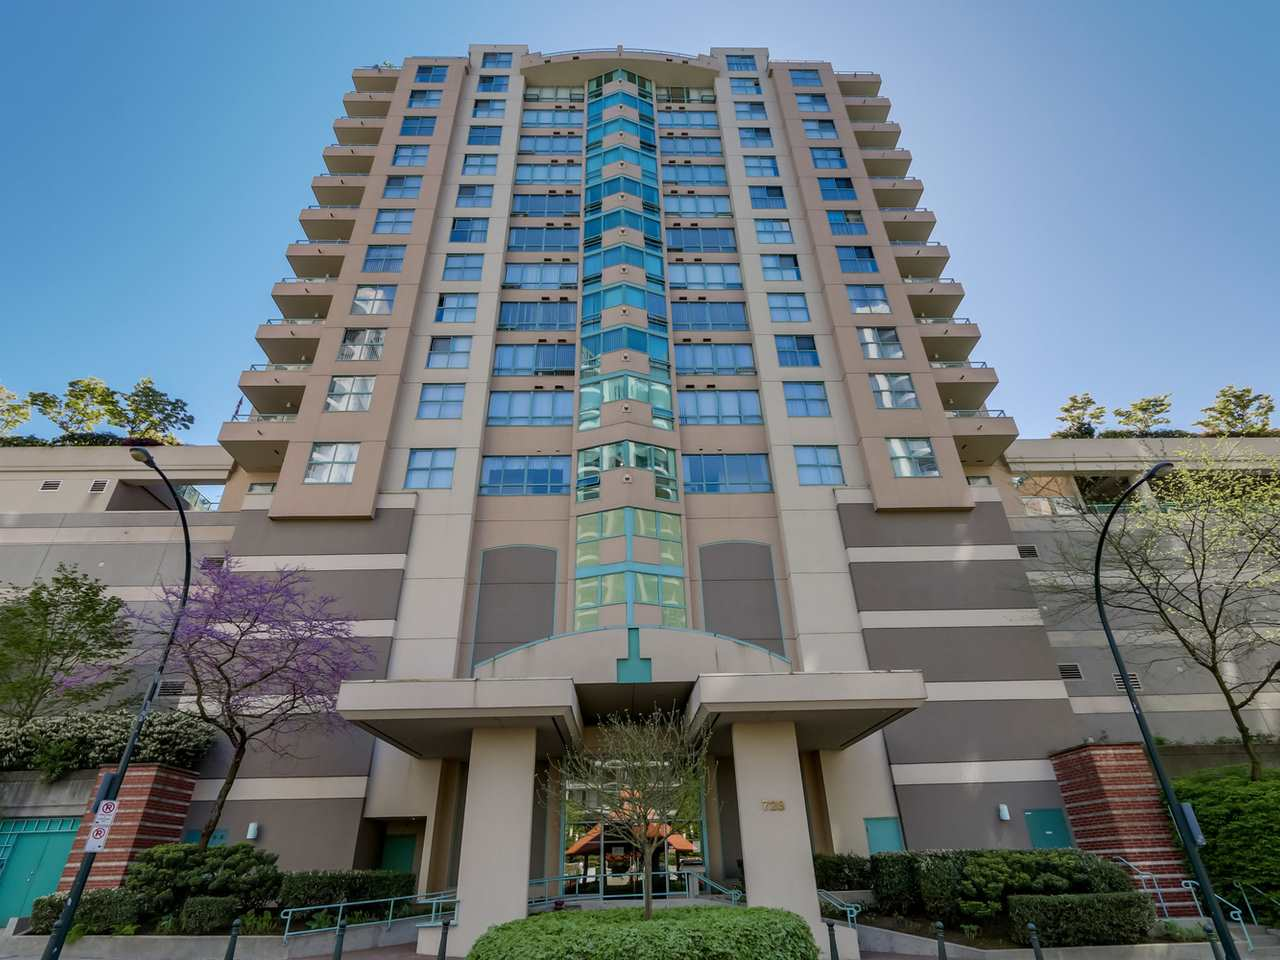 Main Photo: 403 728 PRINCESS Street in New Westminster: Uptown NW Condo for sale : MLS® # R2061685